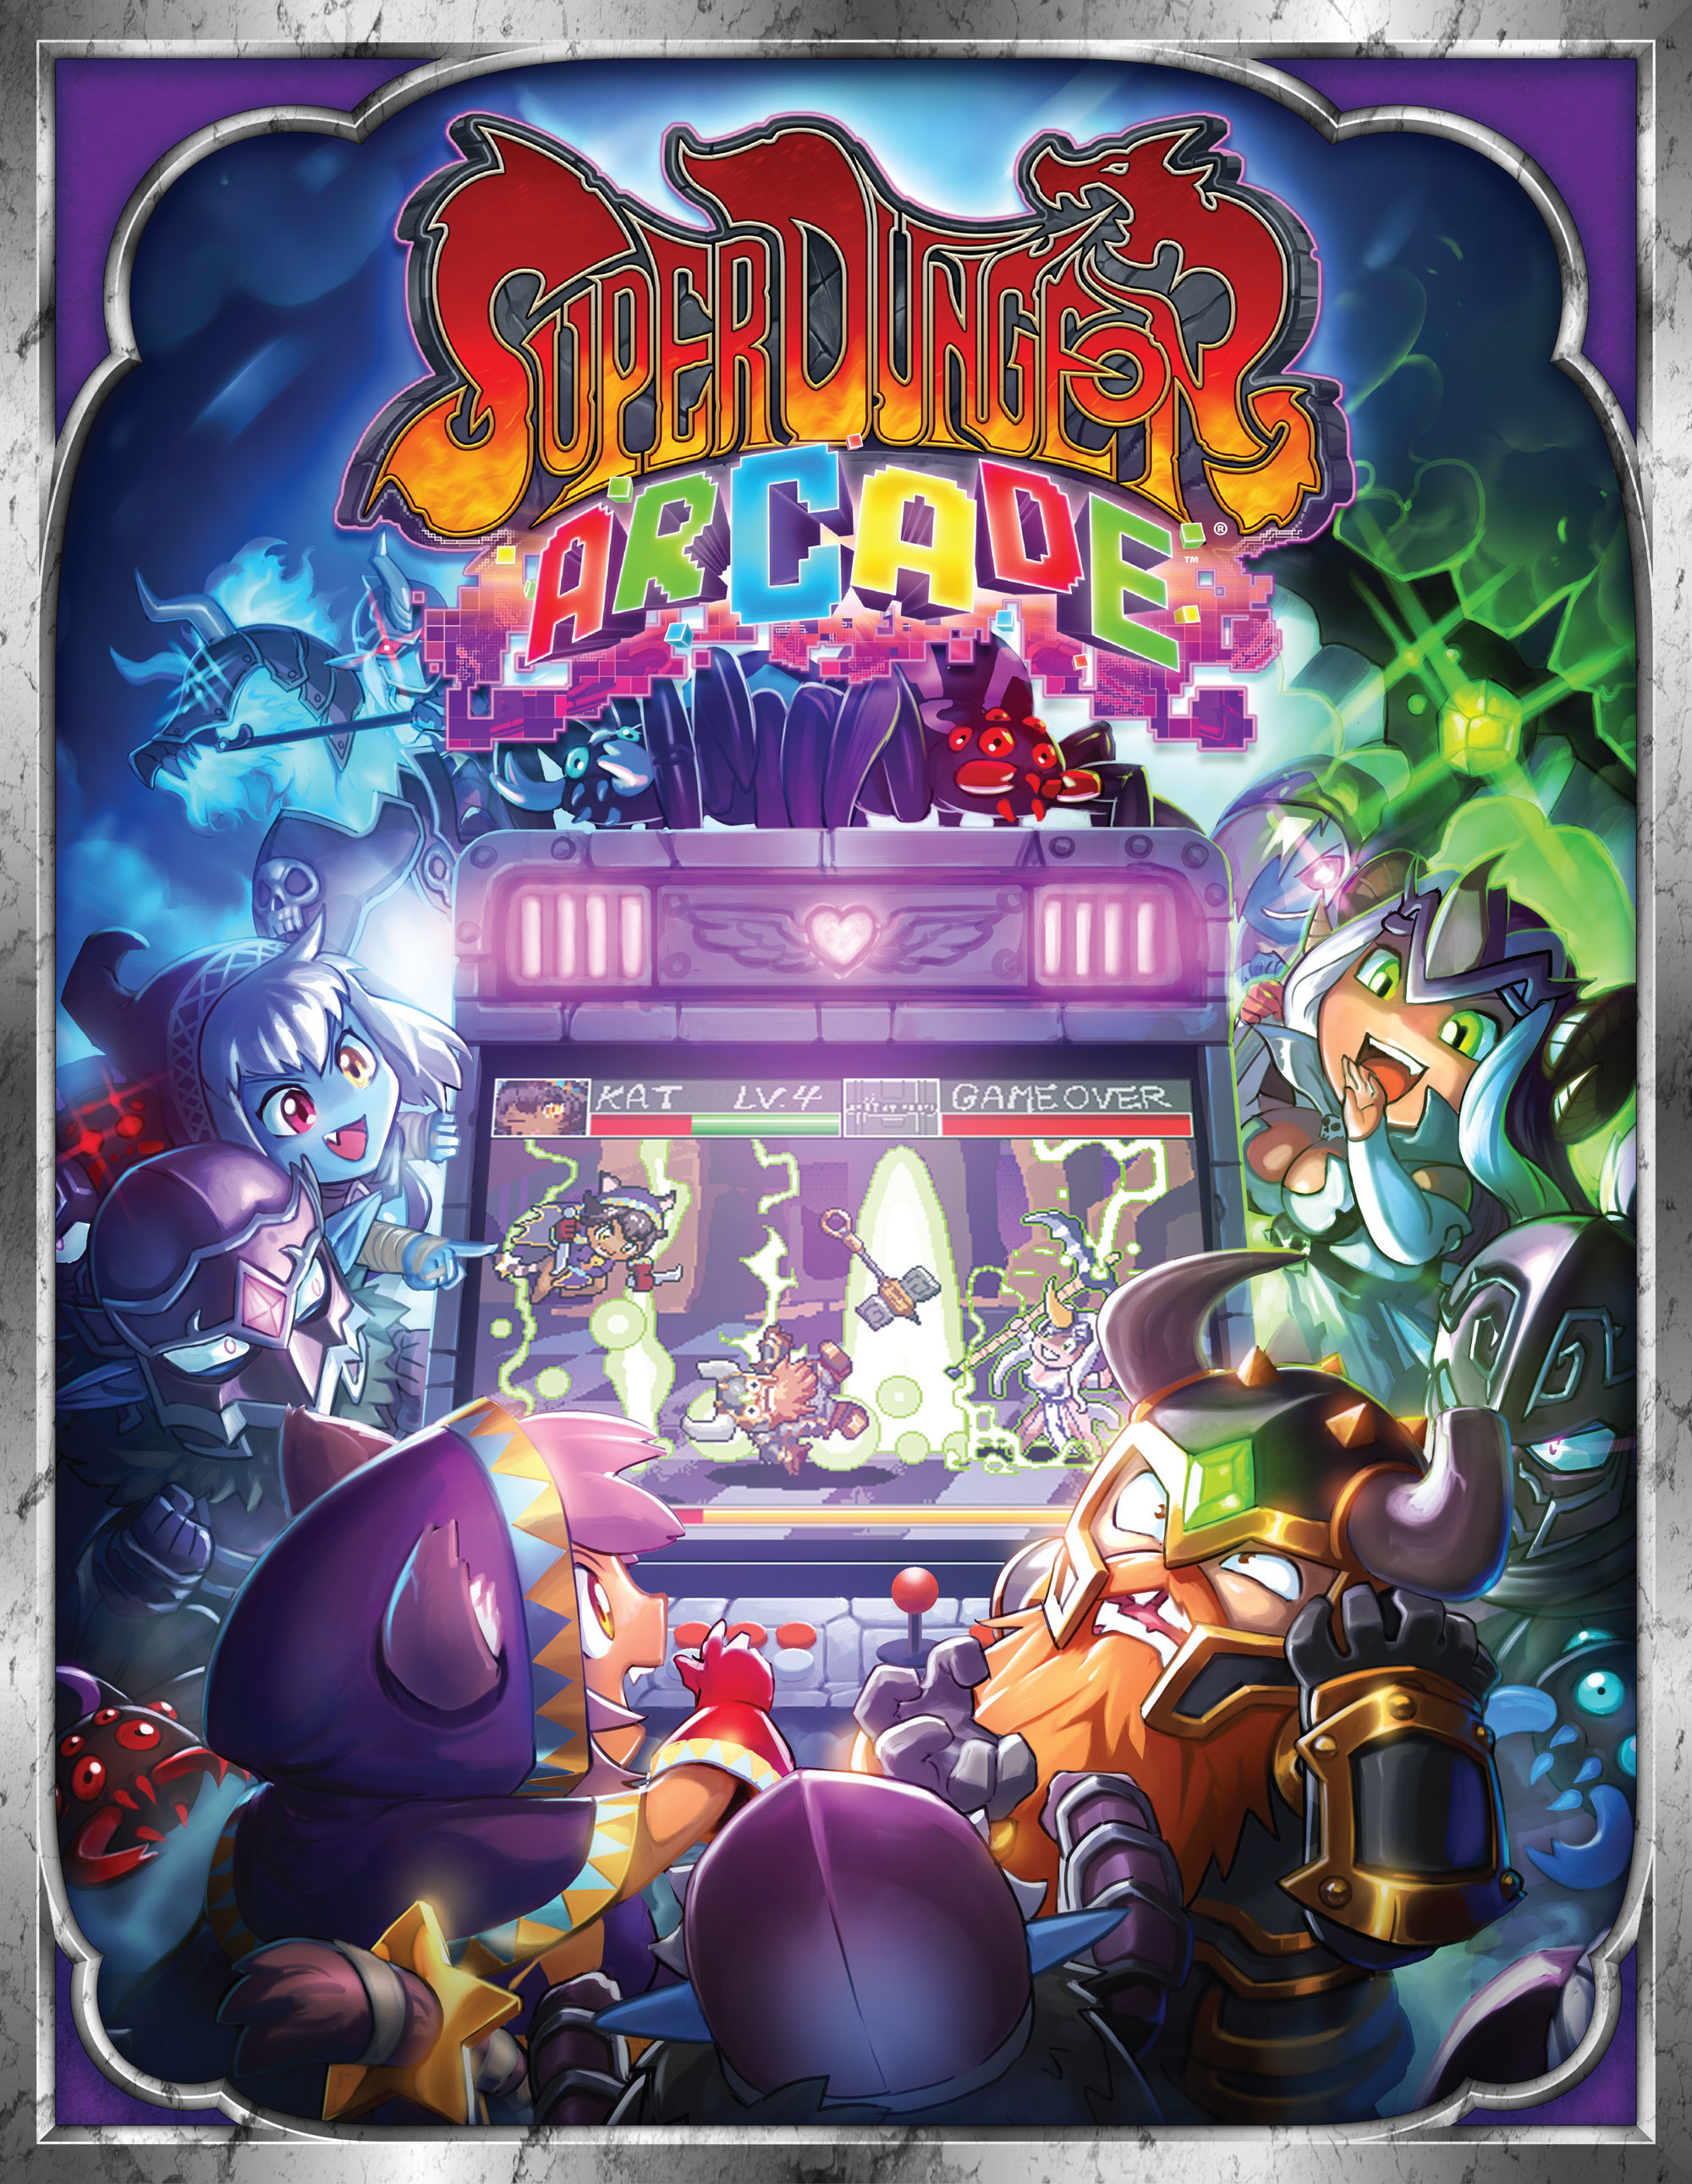 Super Dungeon Arcade Rulebook Cover